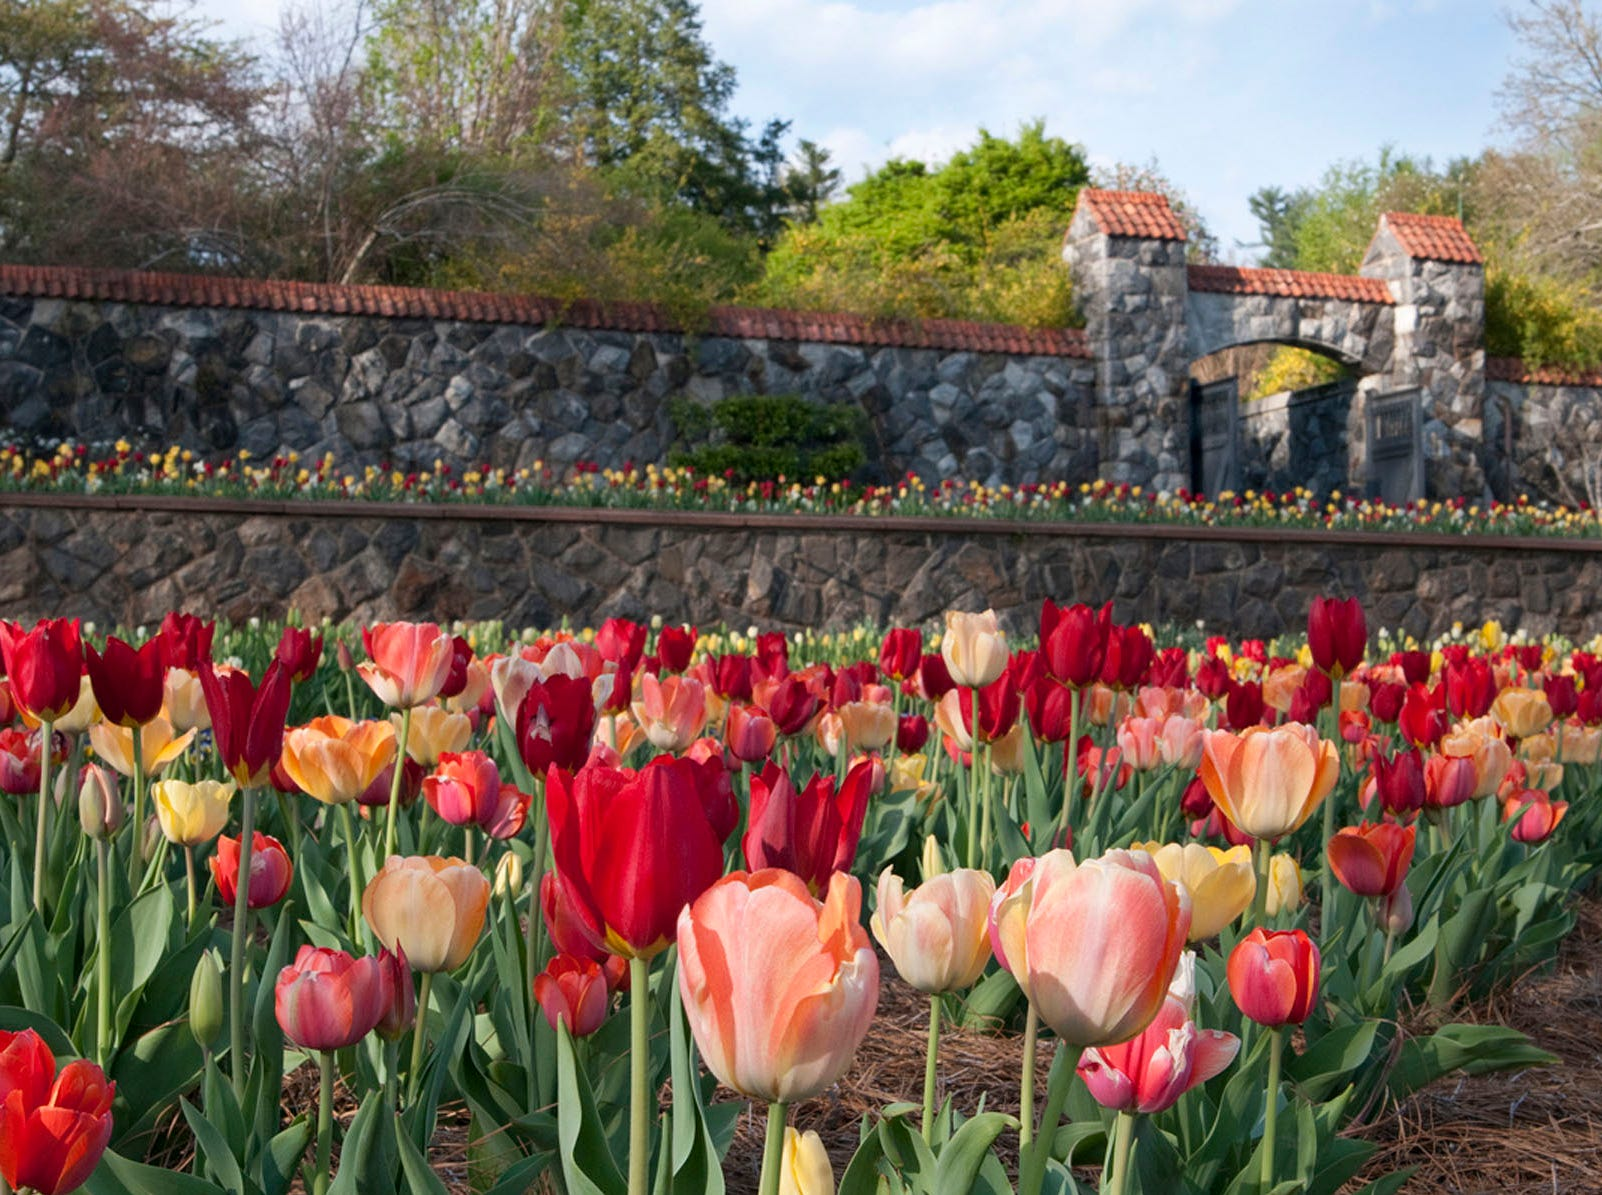 The Walled Garden is home to a grand display of tulips and other spring flowers. Find out what's blooming at the Biltmore's website.